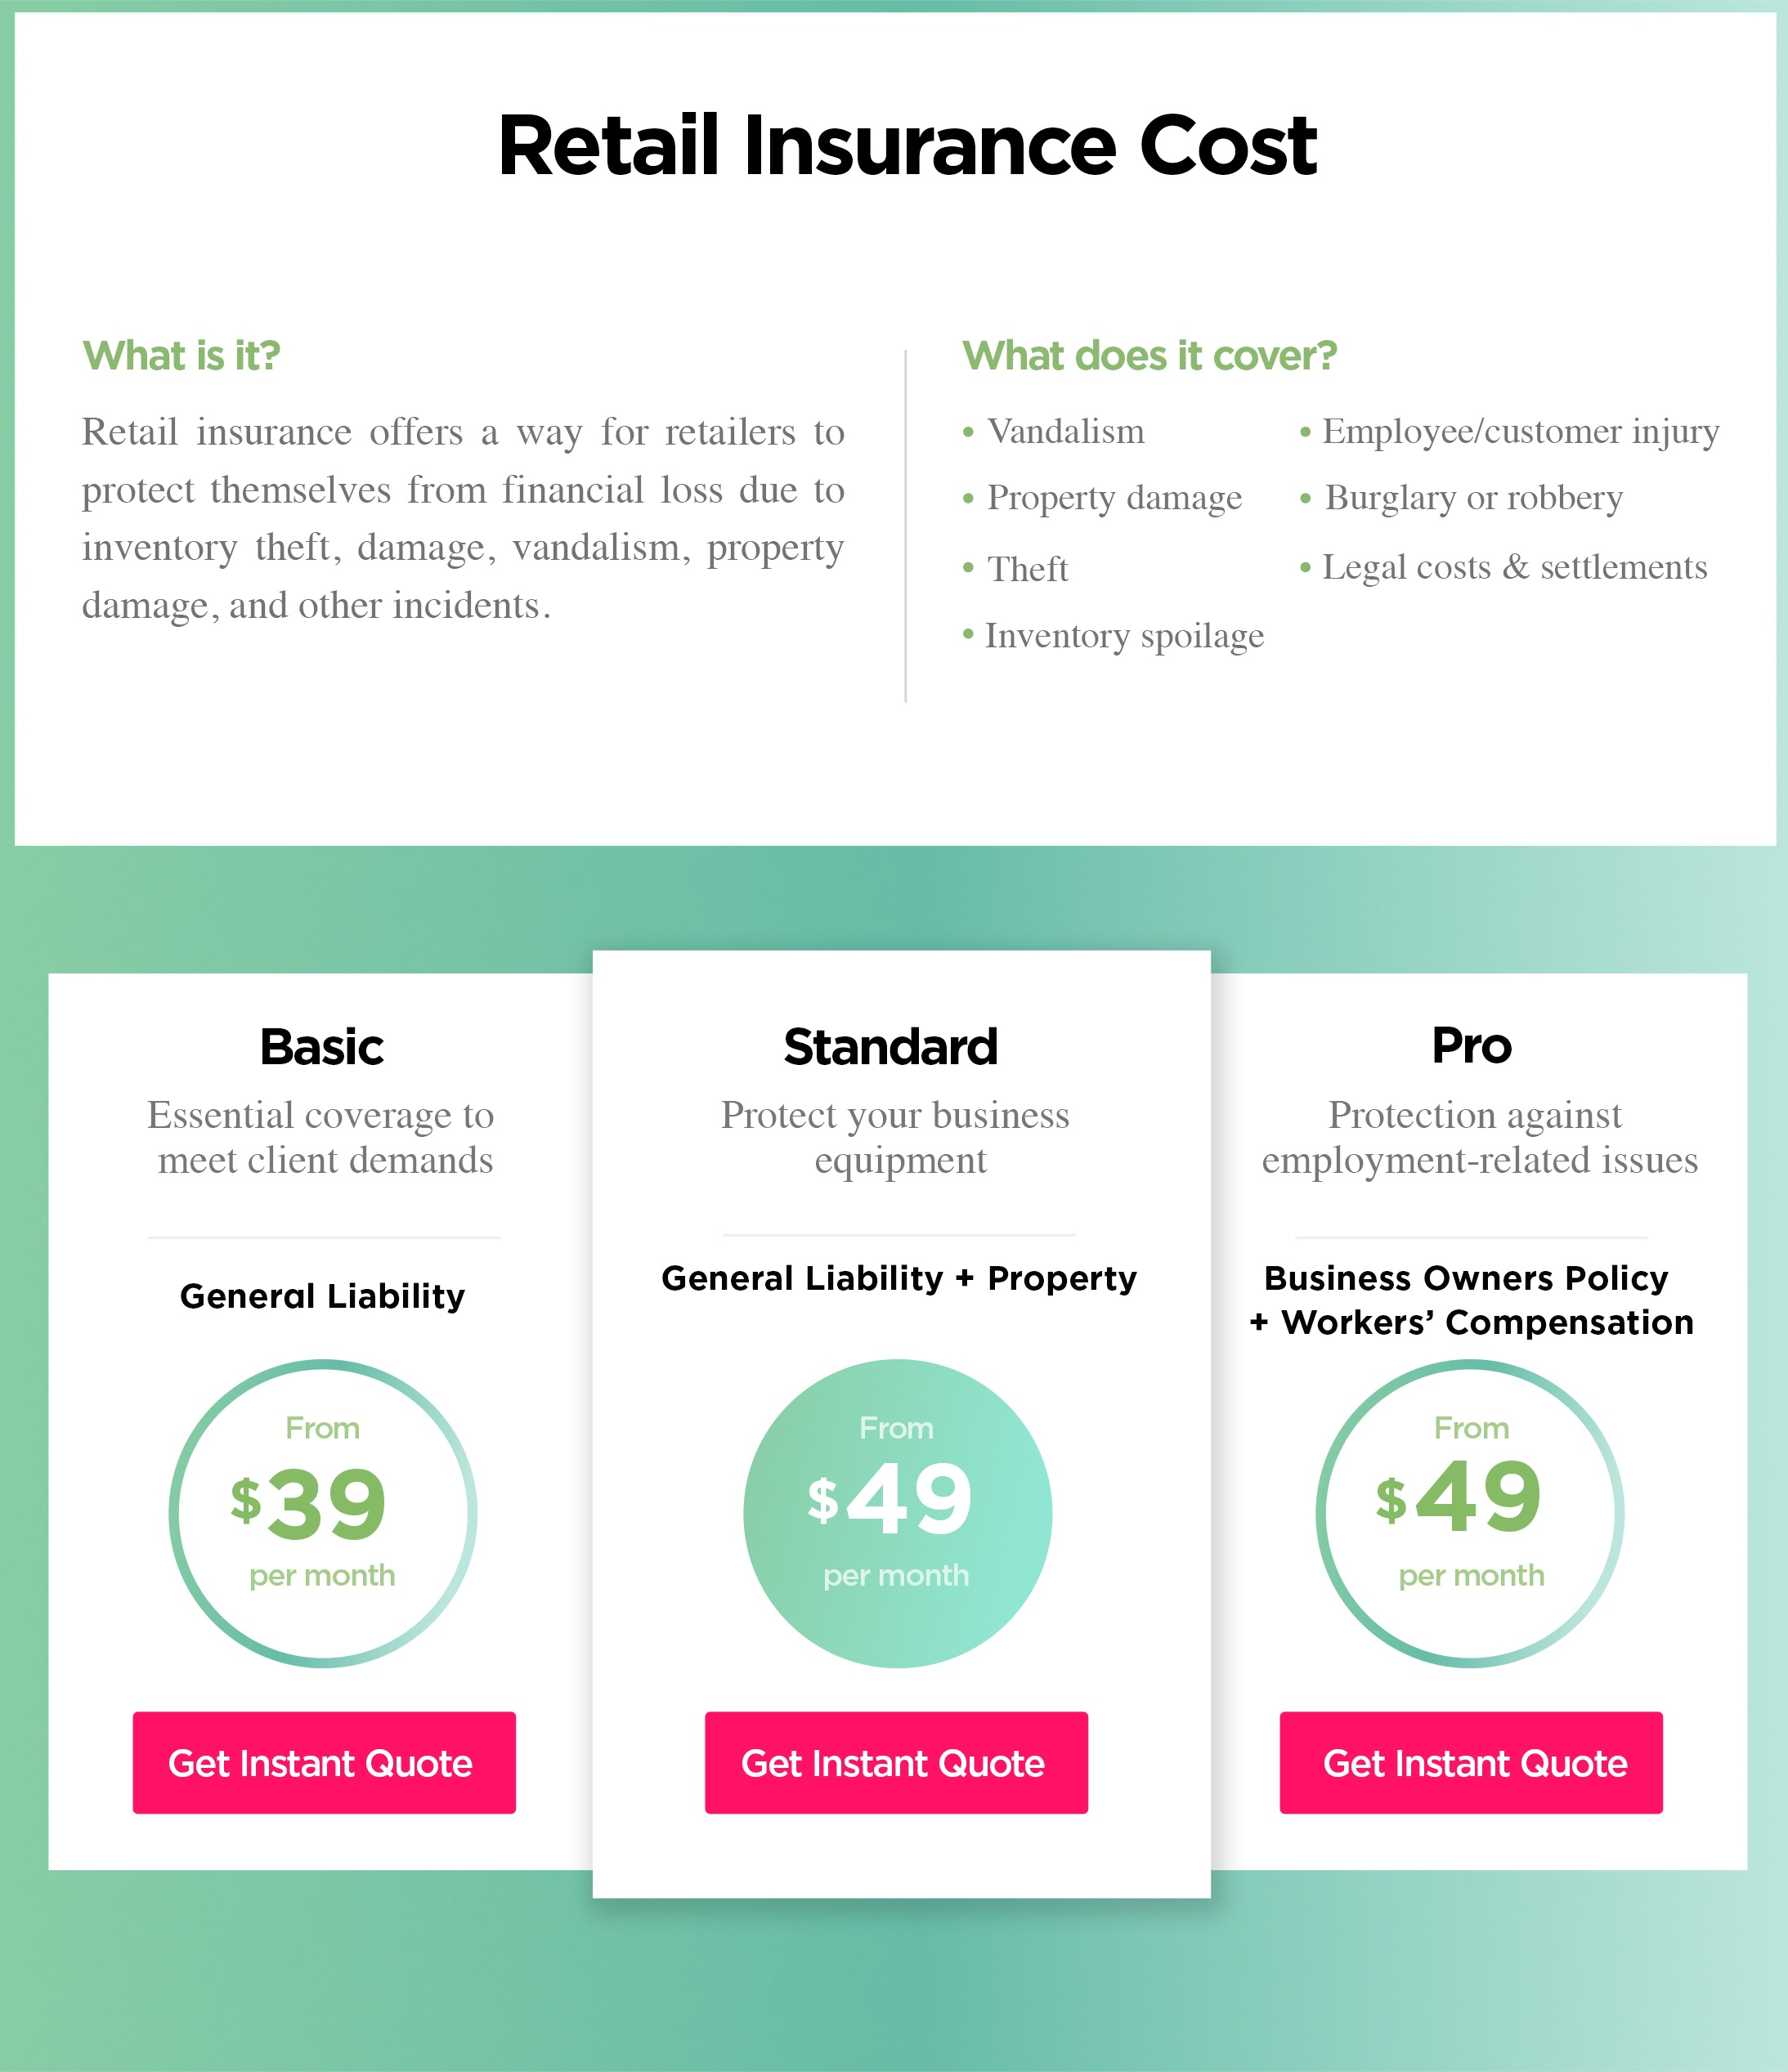 Retail Insurance Cost